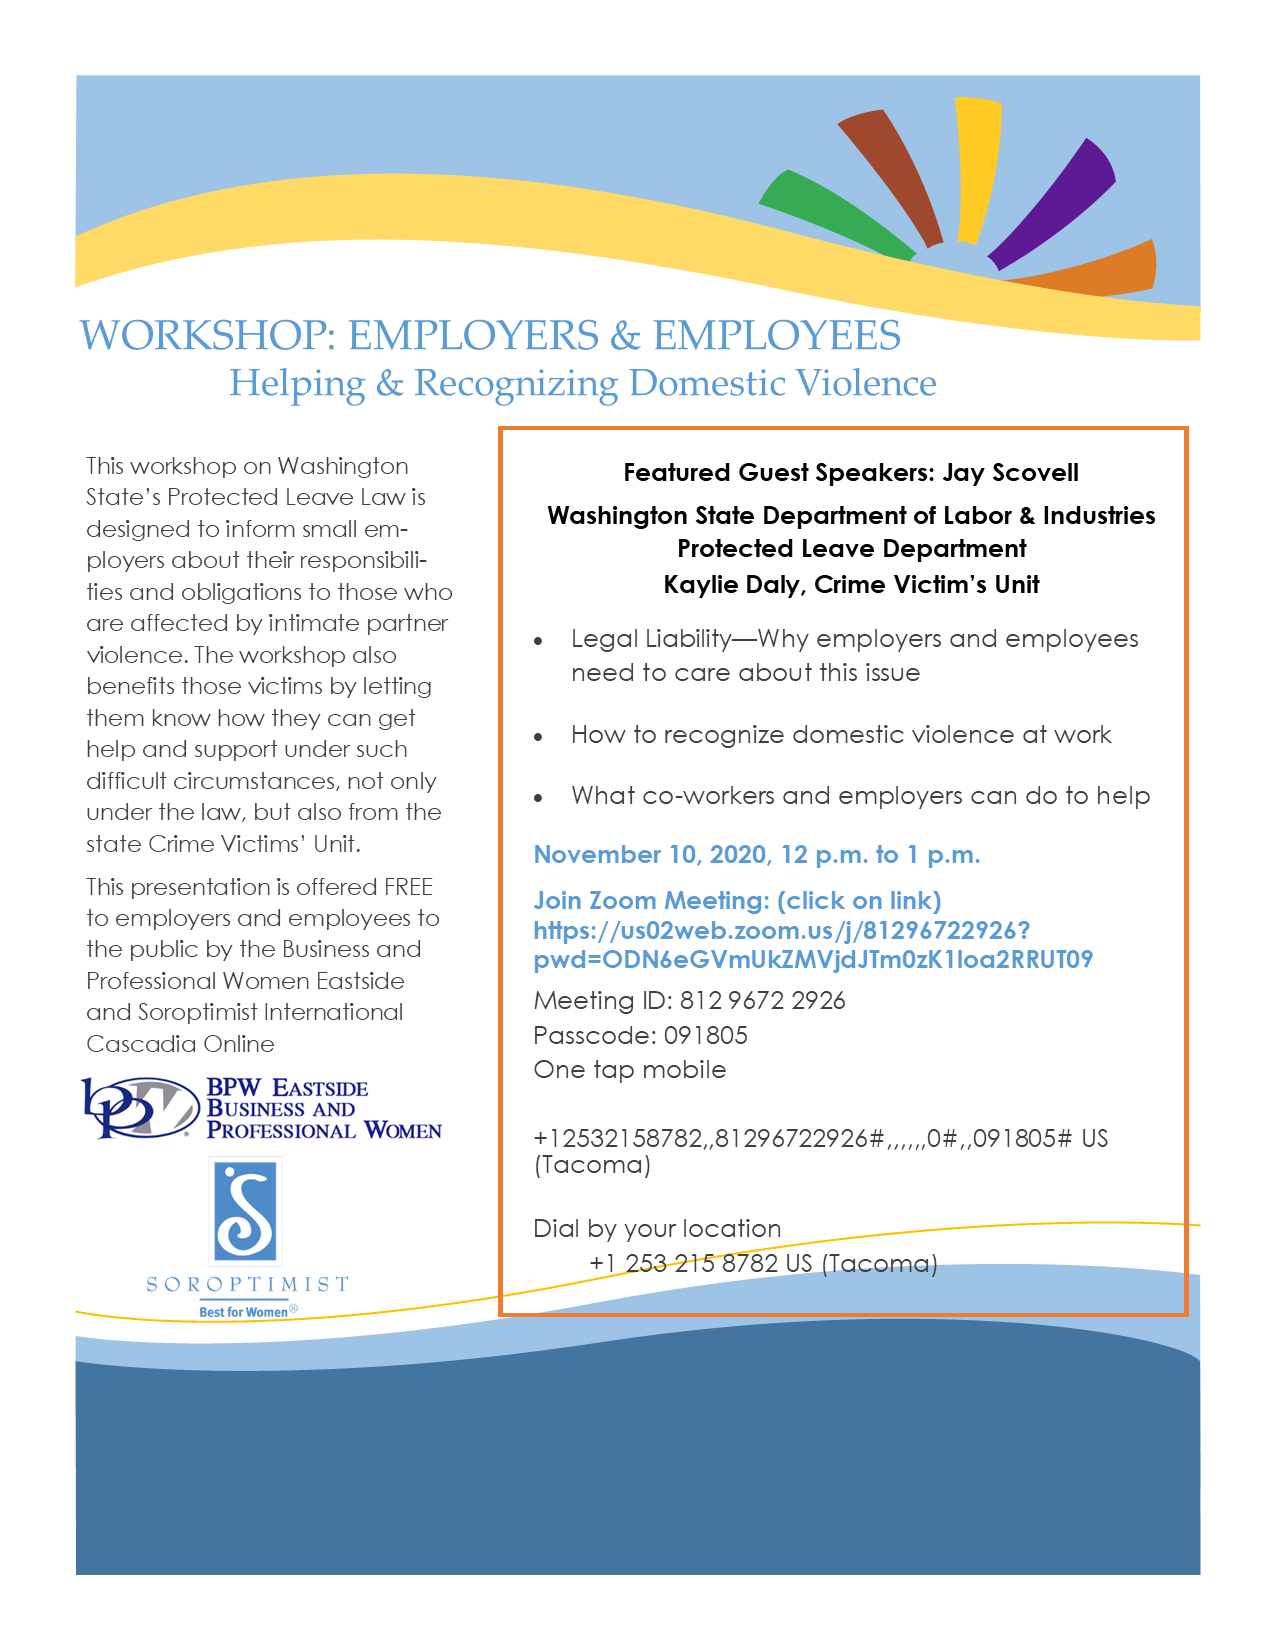 L & I Workshop Concerning the Washington State Protective Leave Law for Employers & Employees @ Zoom Meeting